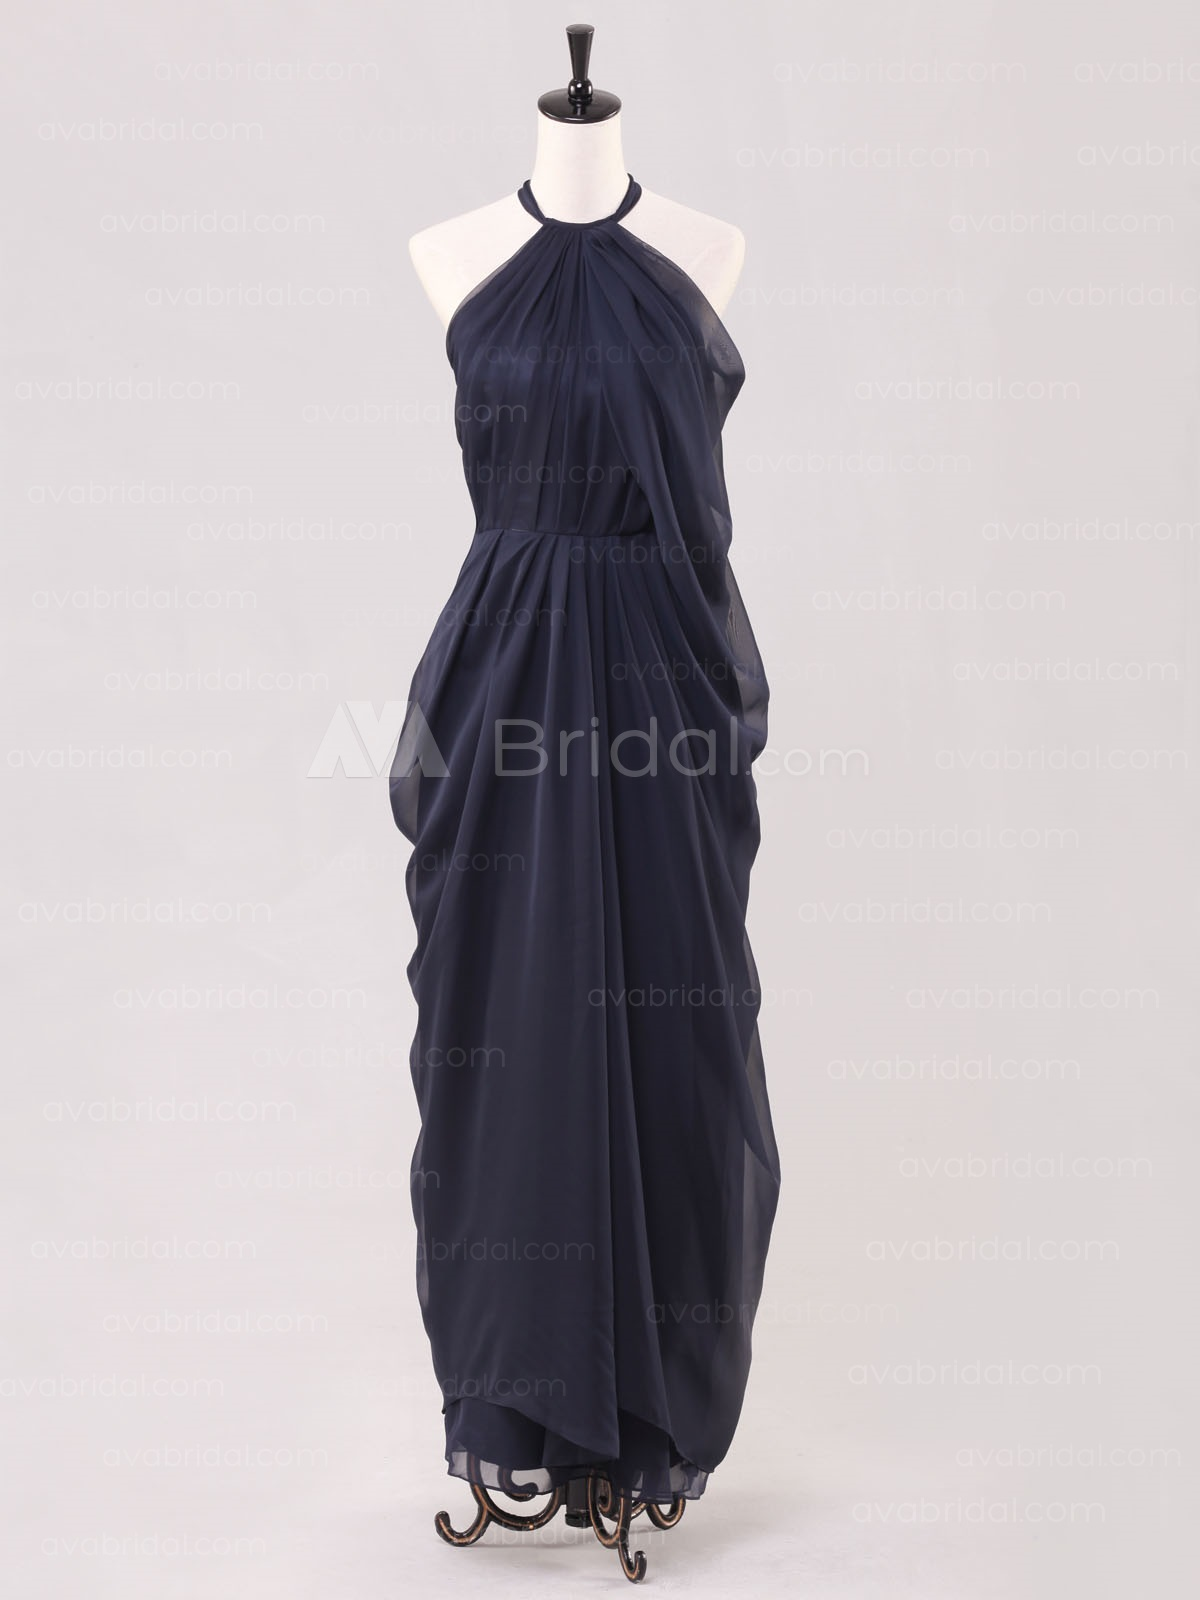 Vintage Inspired 1920's Style Bridesmaid Dress B479-front